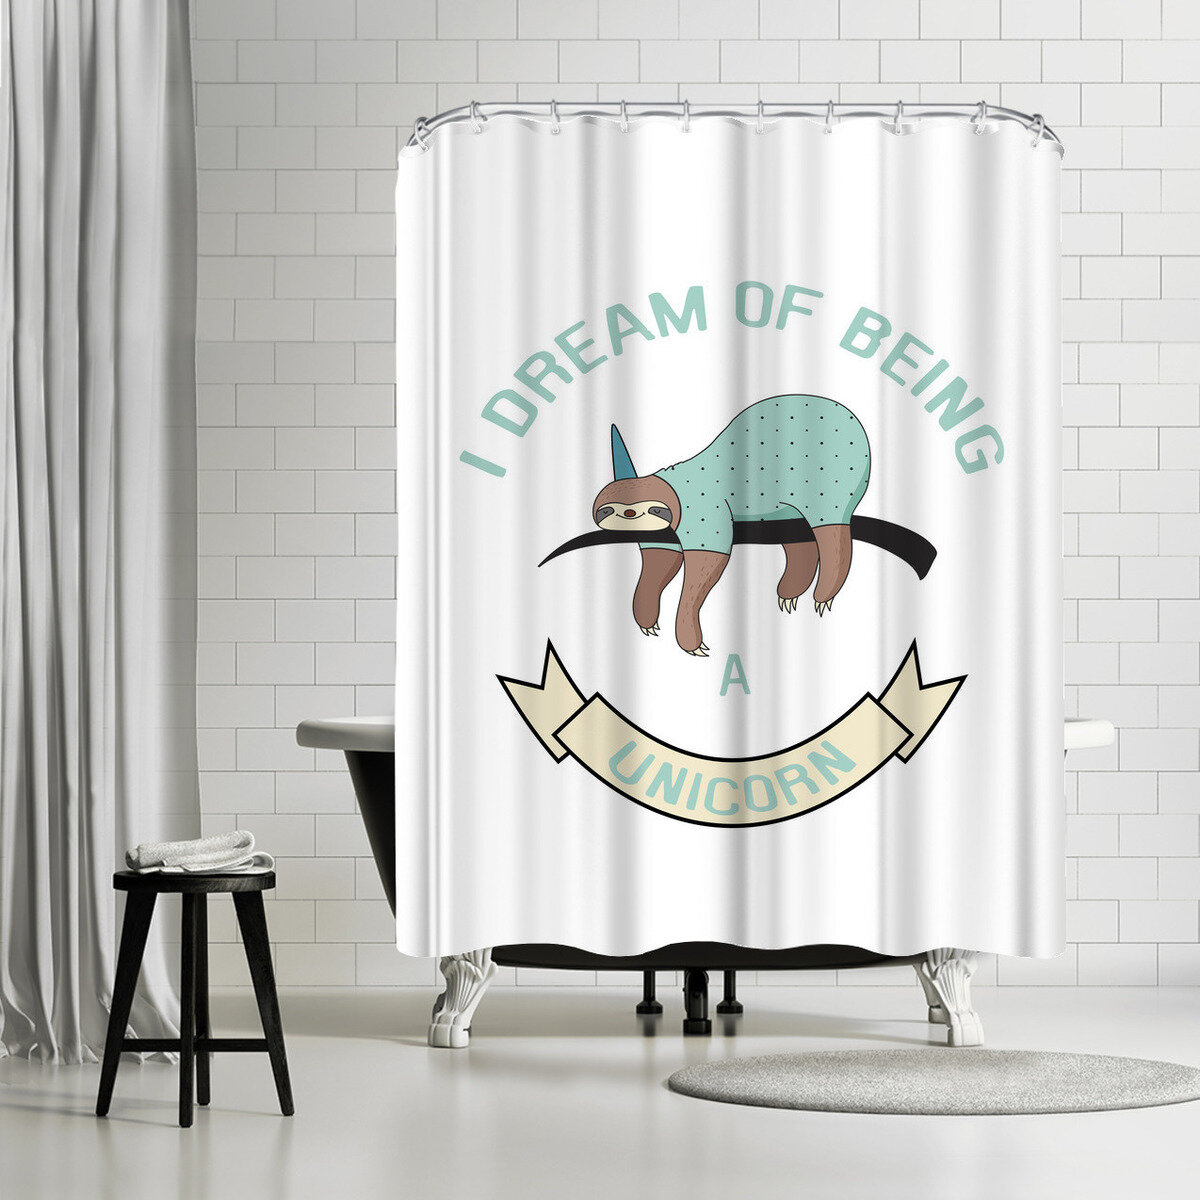 East Urban Home Lebens Art Sloth Unicorn Shower Curtain